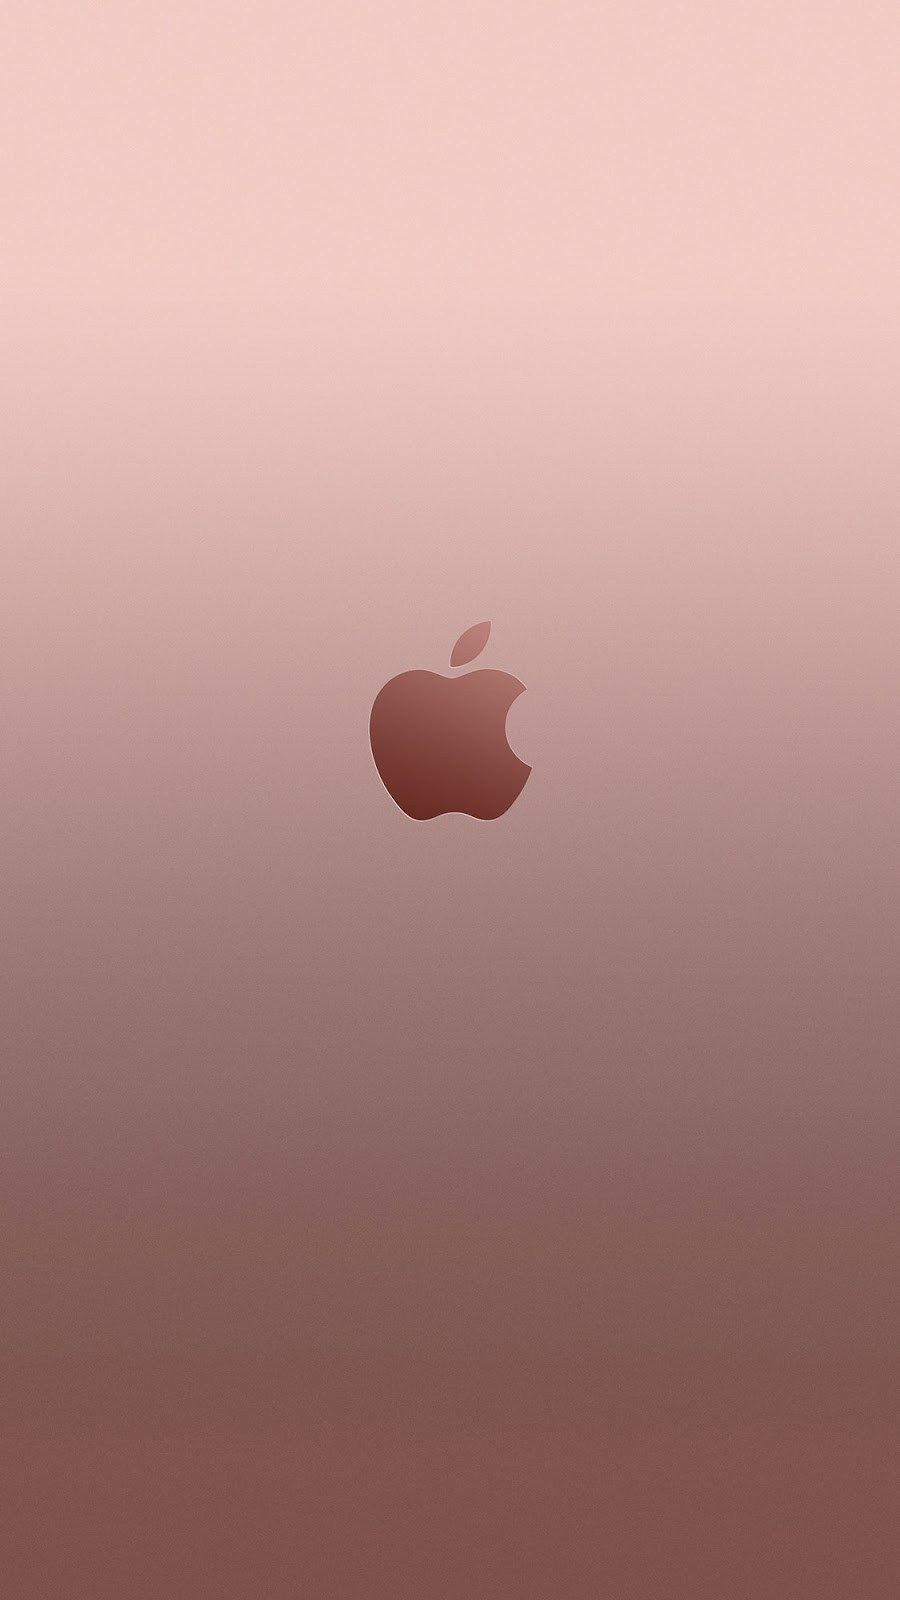 Iphone and android wallpapers 22 beautiful rose gold - Rose gold background for iphone ...